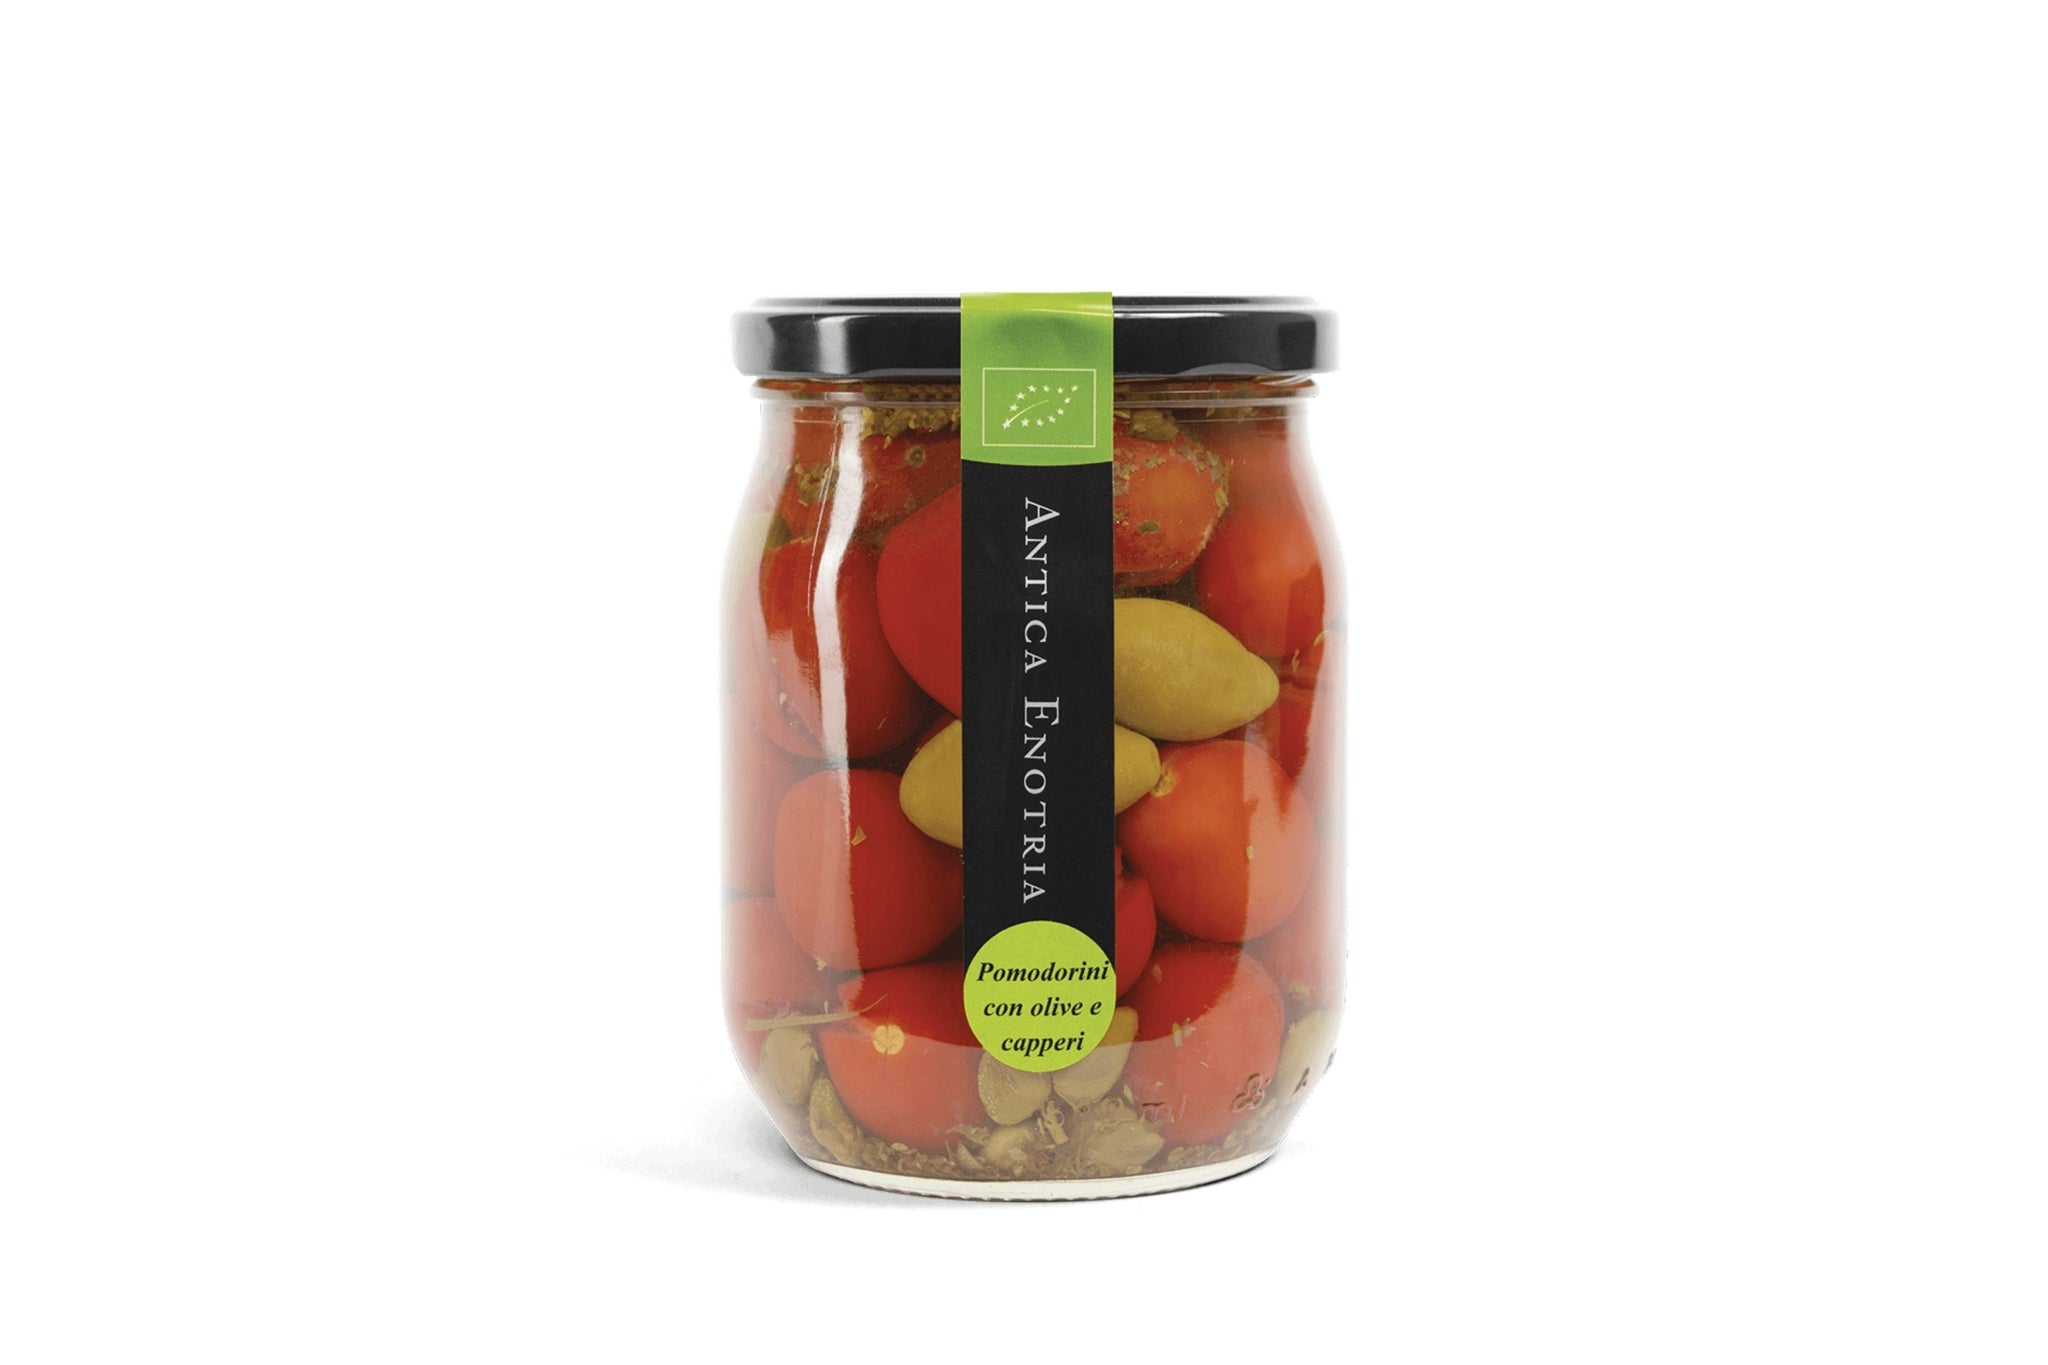 COMING SOON! Organic Tomatoes Bella di Cerignola Olives and Capers 580g